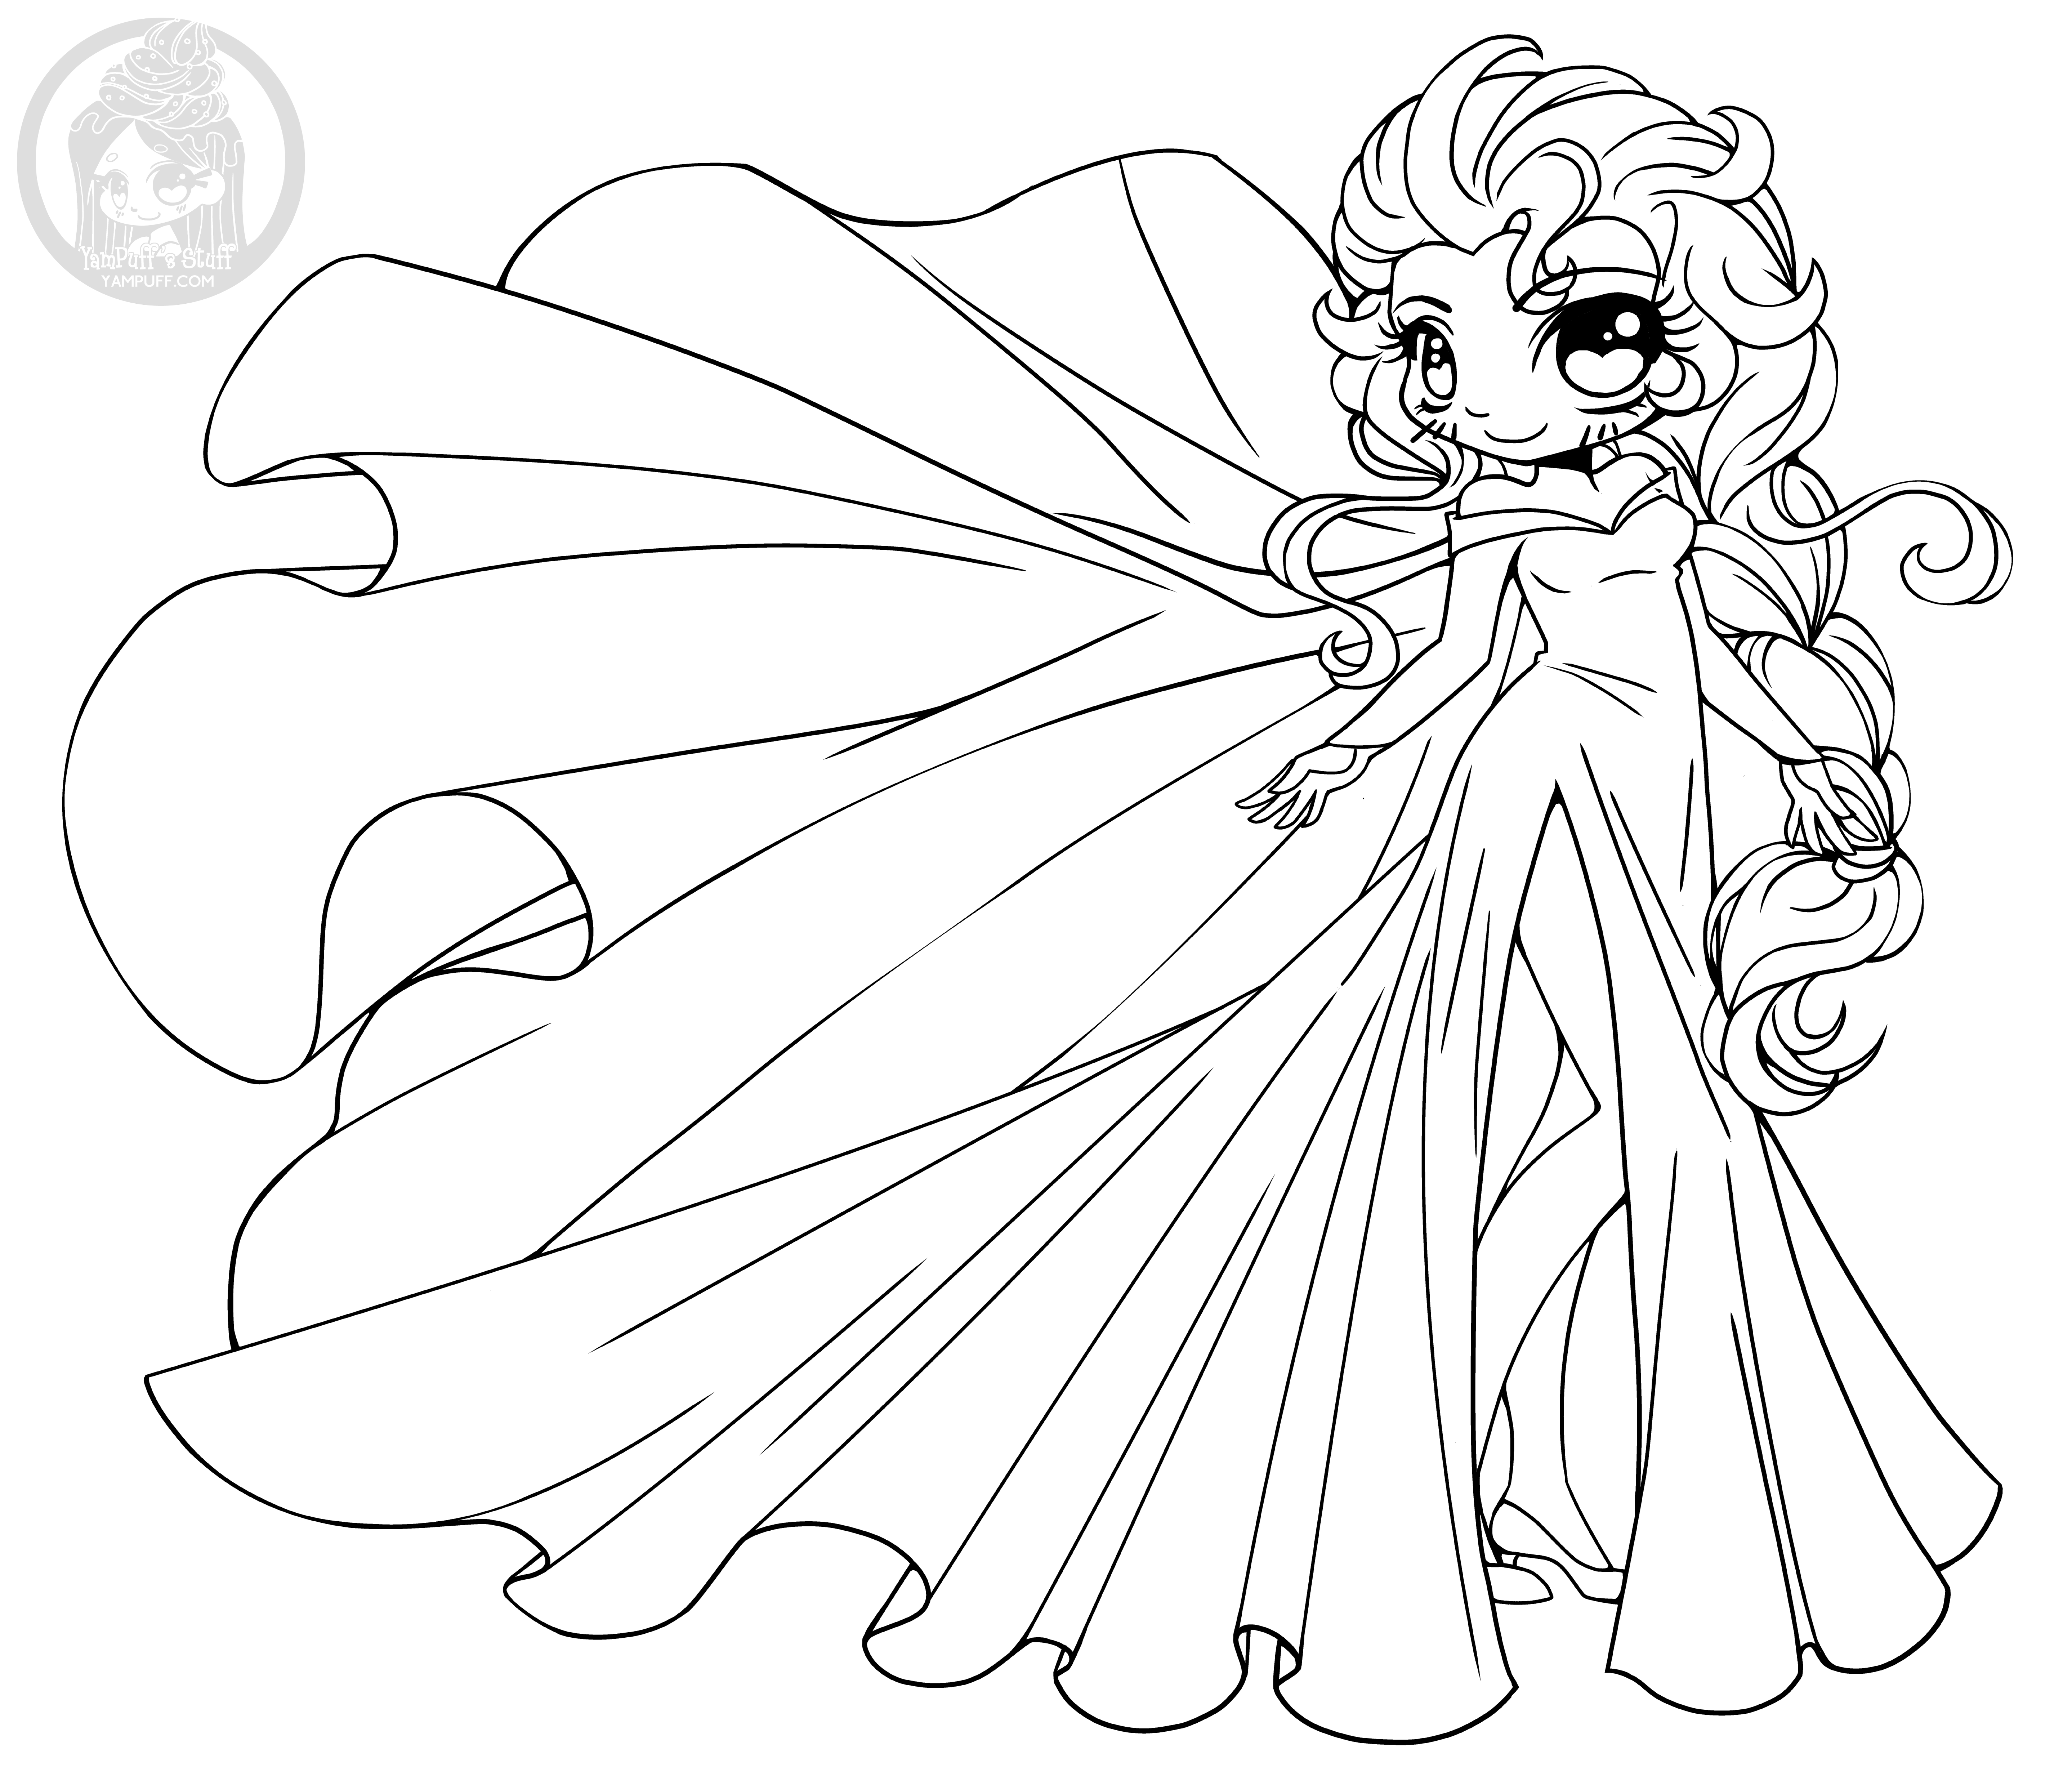 - Chibi Disney Characters Coloring Pages - Coloring Ideas